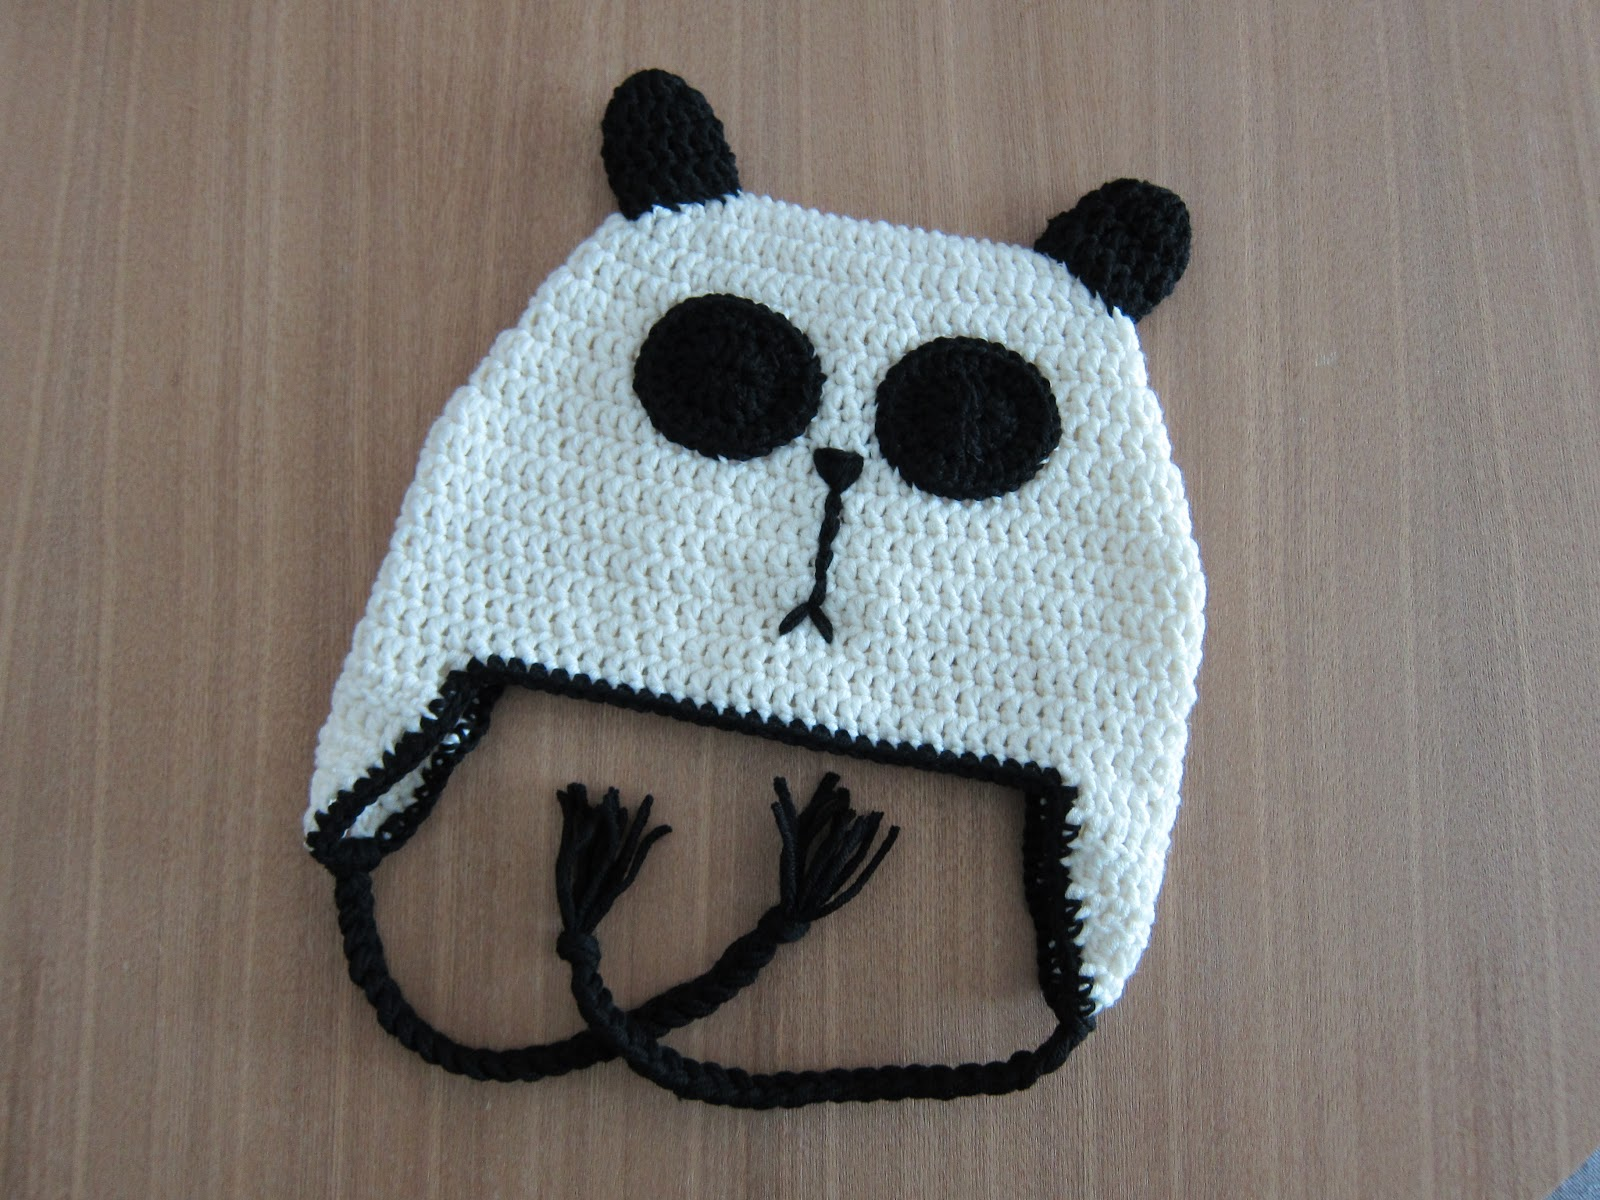 Crochet Panda a Panda hat pattern in adult size | Follow me and see ...